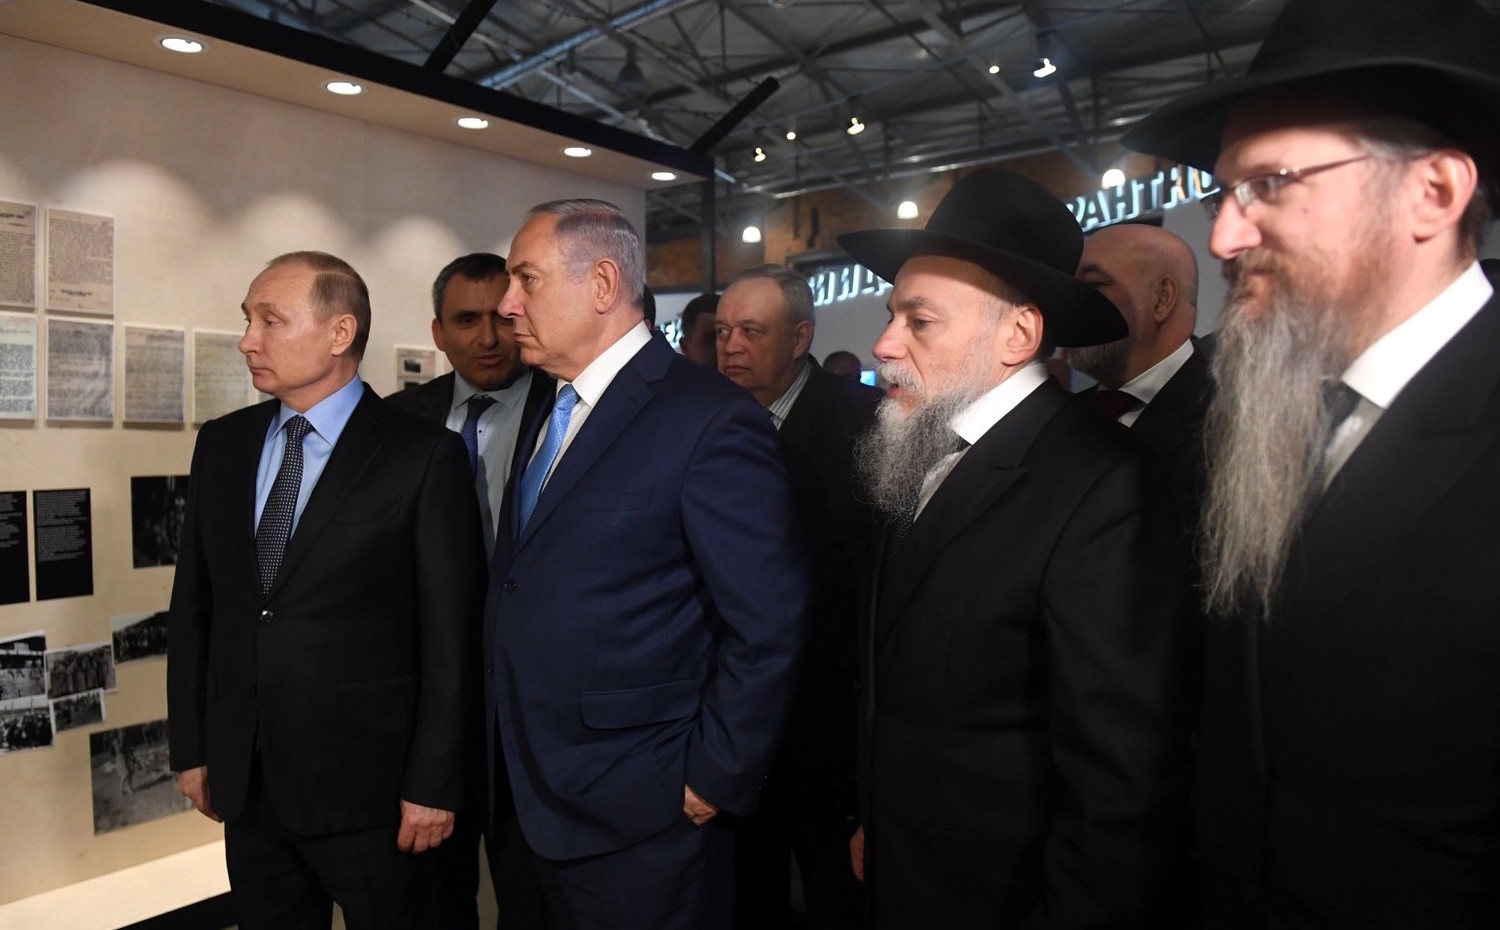 From left: Russian President Vladimir Putin, Israeli Prime Minister Benjamin Netanyahu, Environmental Protection Minister Ze'ev Elkin, and Chief Rabbi of Russia Berel Lazar, at the Jewish Museum and Tolerance Center in Moscow on Jan. 29, 2018.